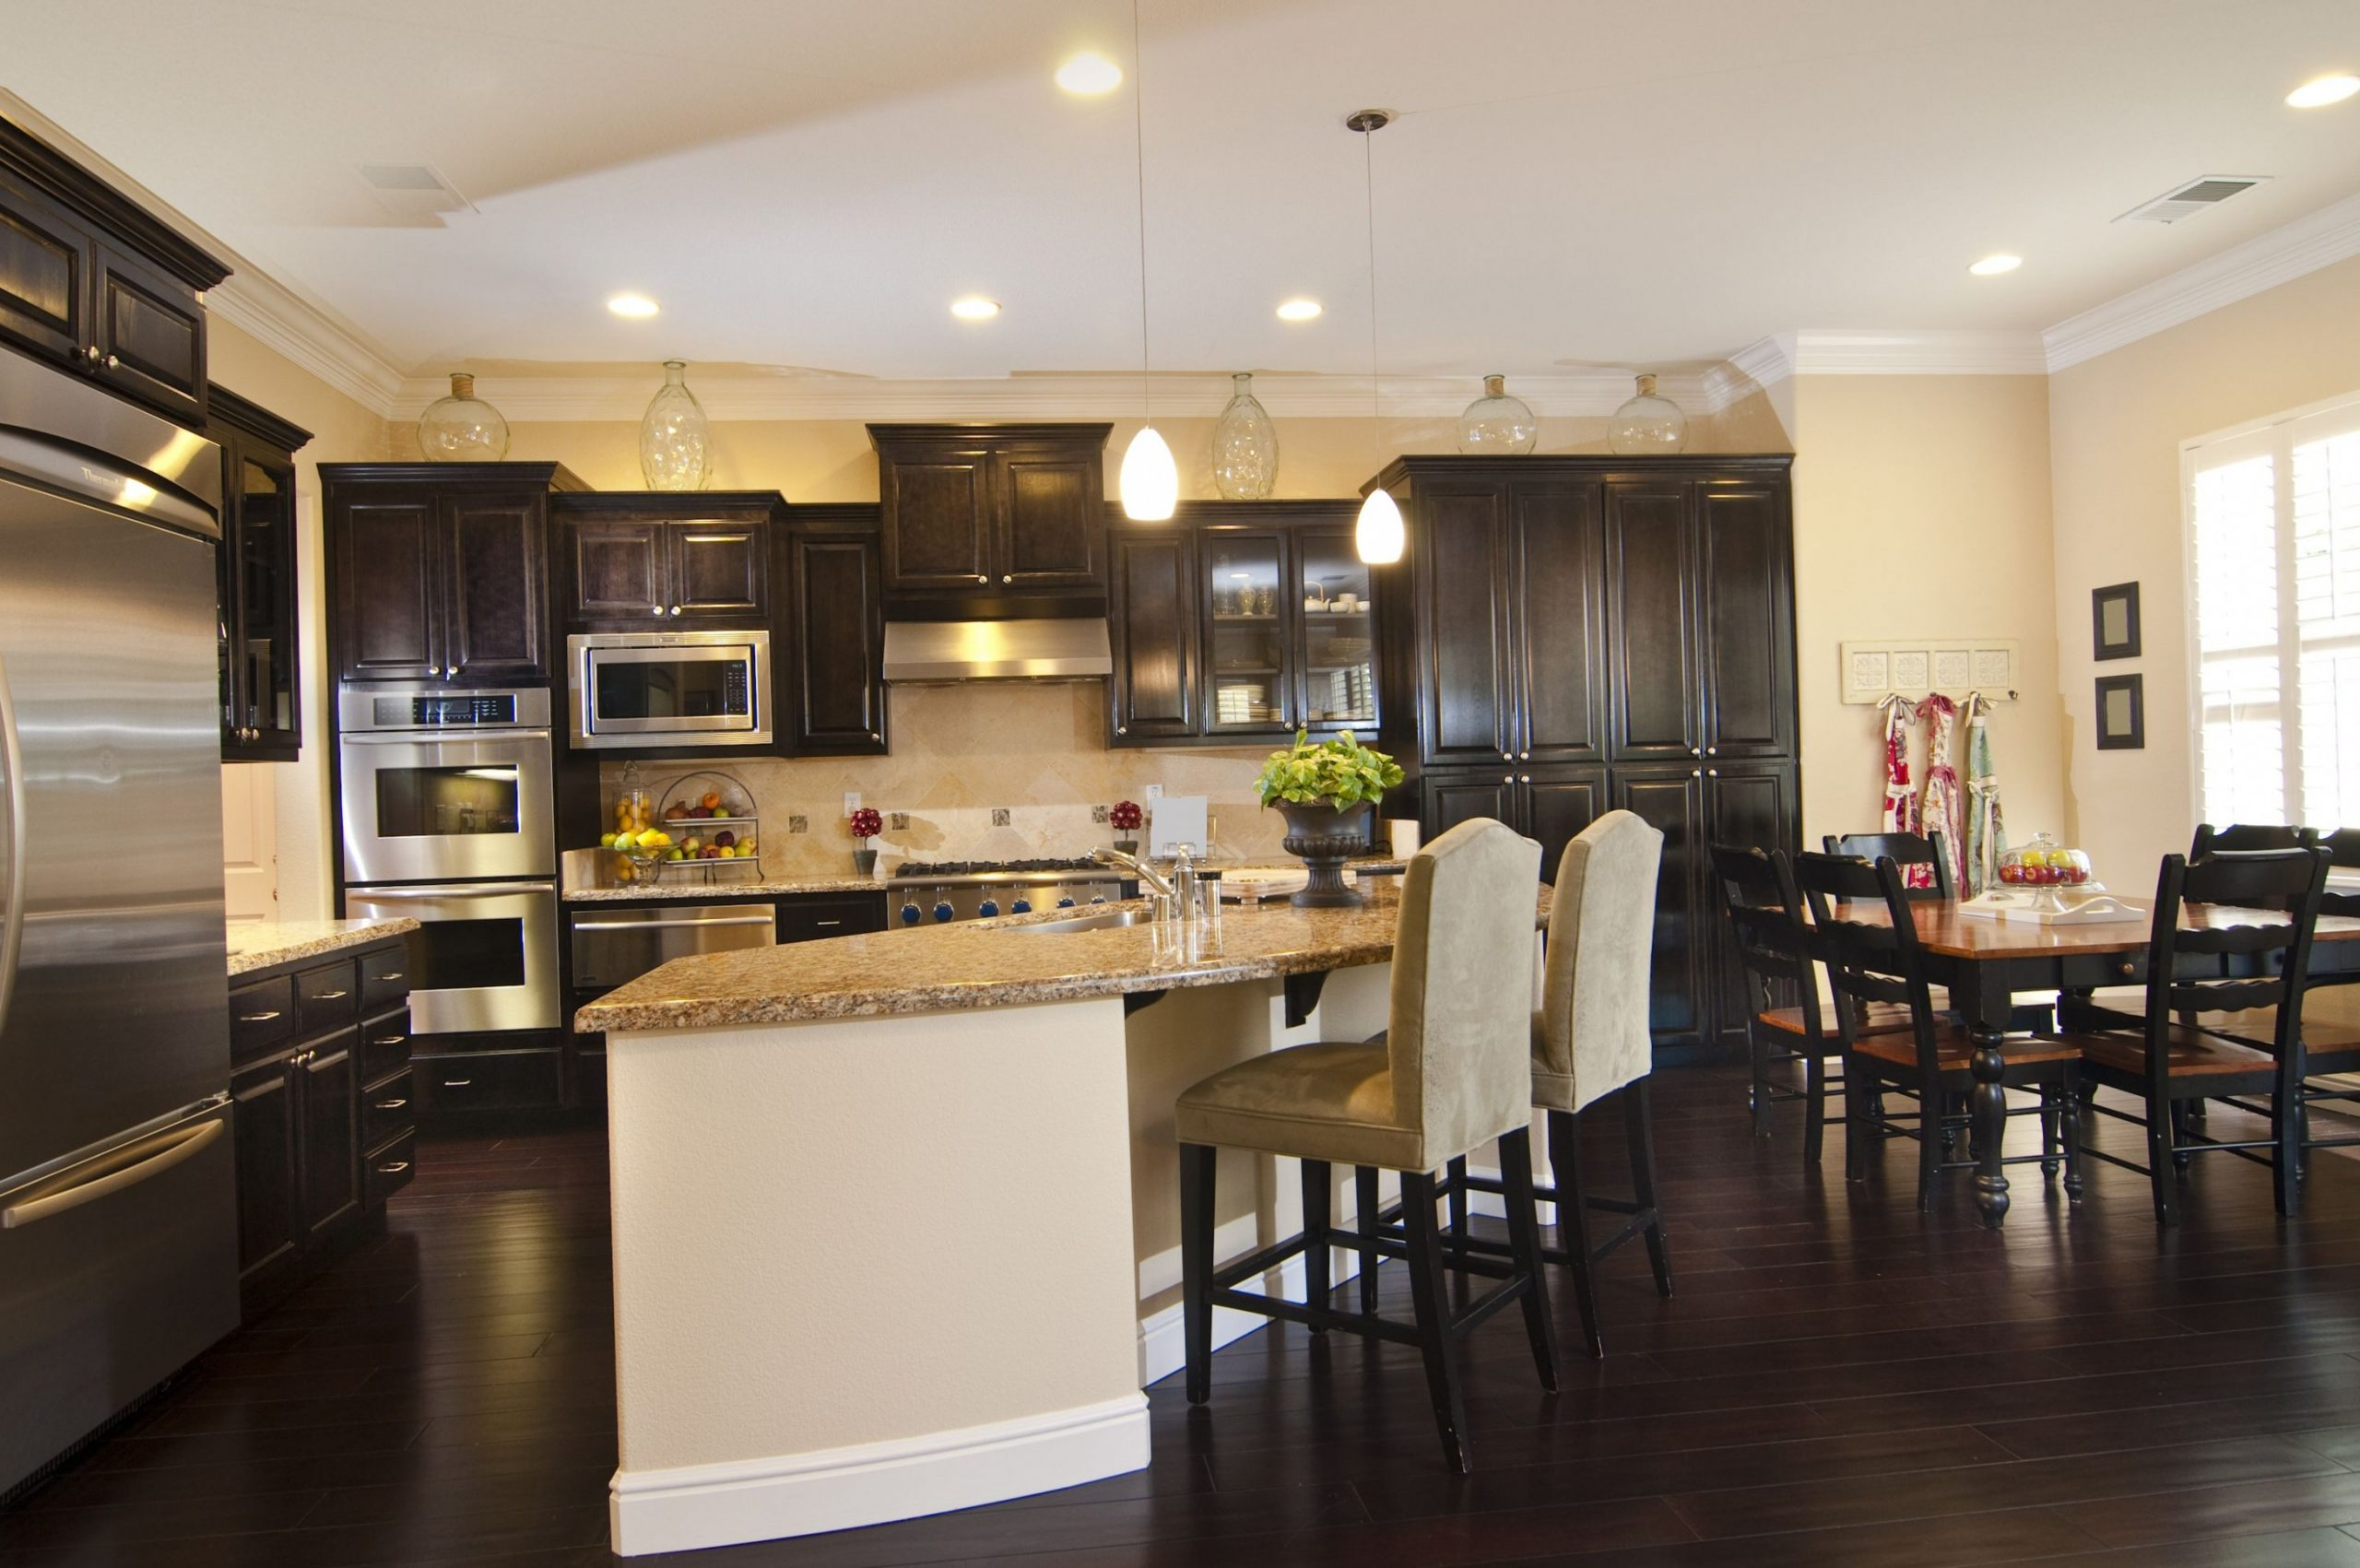 11 Kitchens with Dark Wood Floors (Pictures)  Dark kitchen floors  - Kitchen Cabinets With Dark Floors